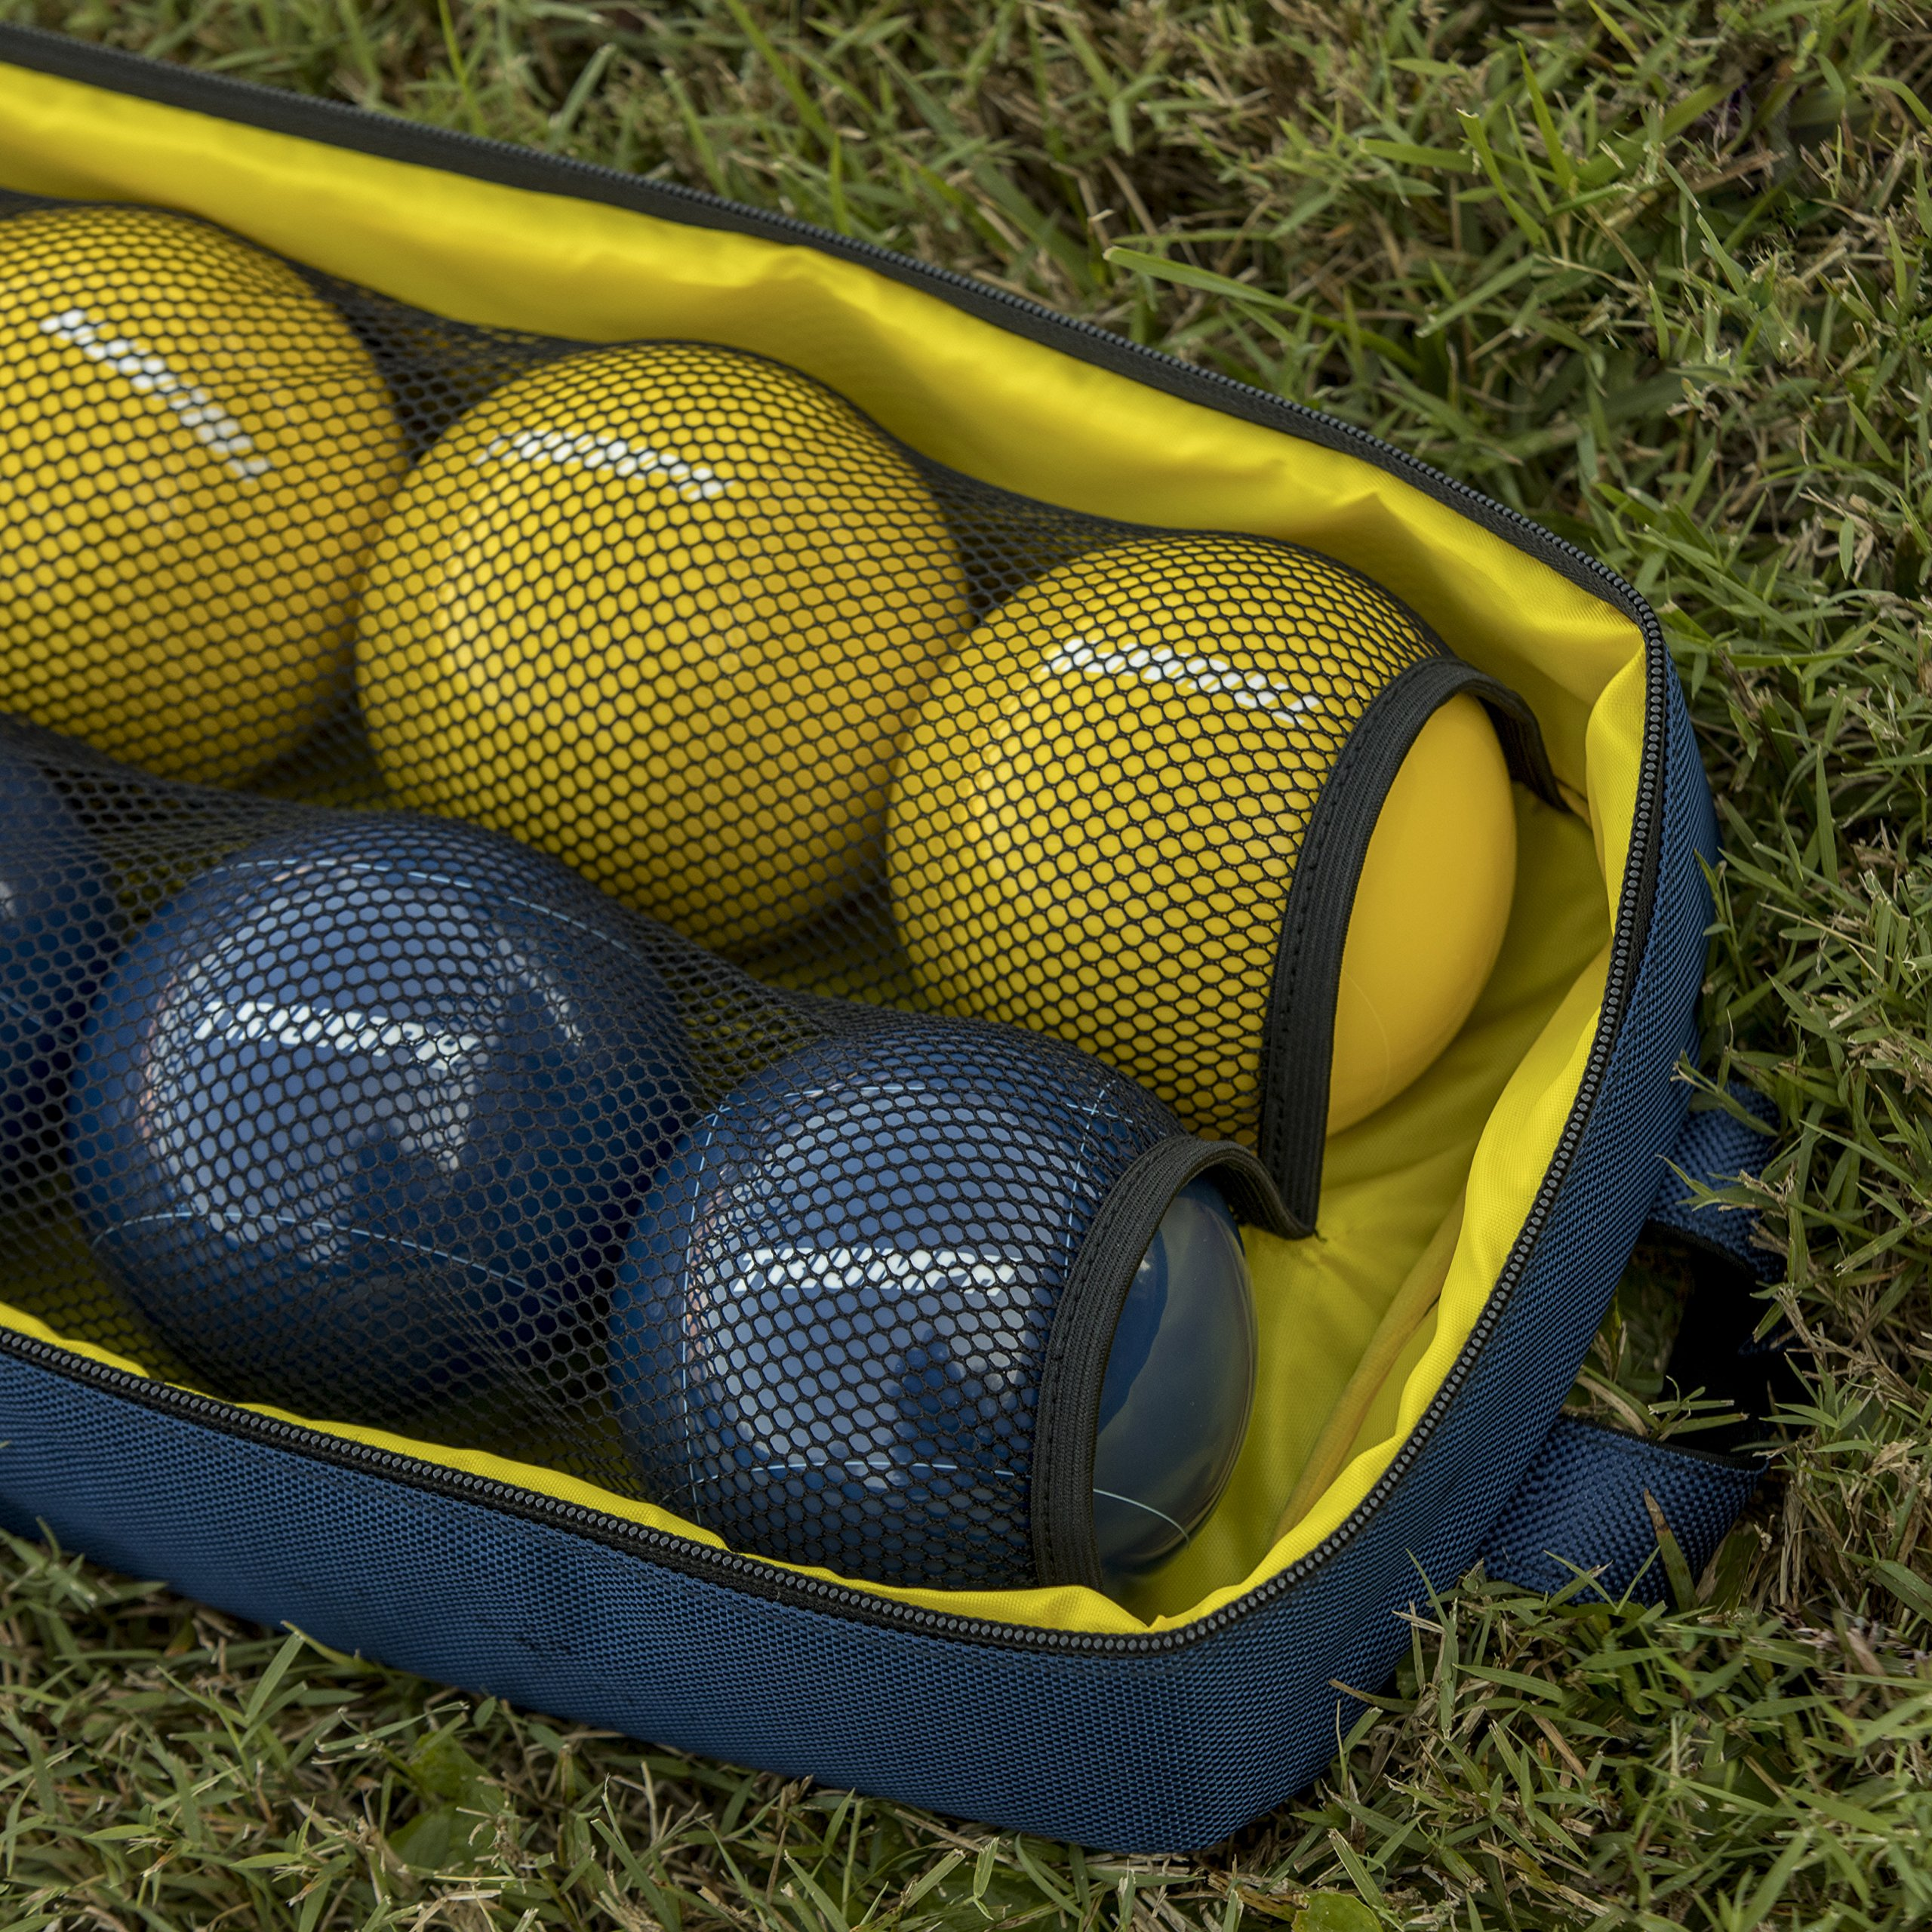 Triumph All Pro 100mm Bocce Set Includes Eight Bocce Balls, One 50mm Jack, and Carry Bag by Triumph Sports (Image #12)